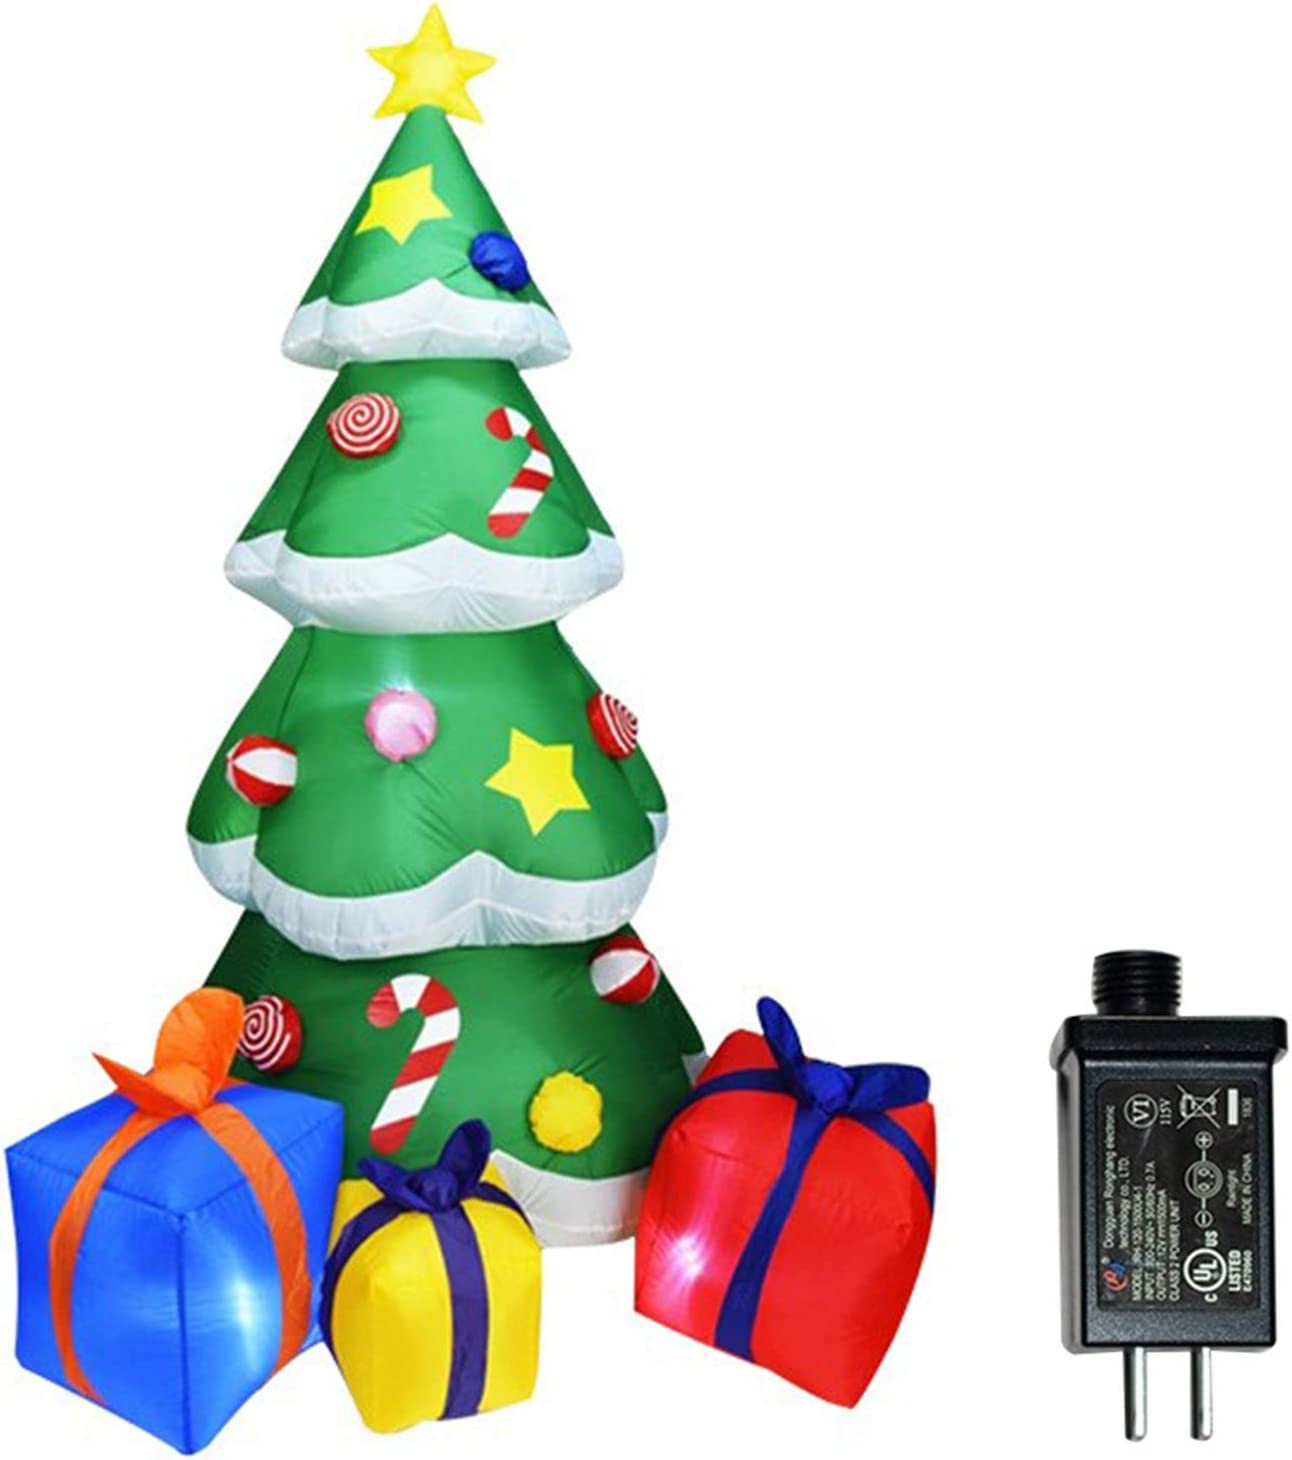 Itlovely 210CM LED San Francisco New arrival Mall Lighting Inflatable Christmas Tree M air Pump